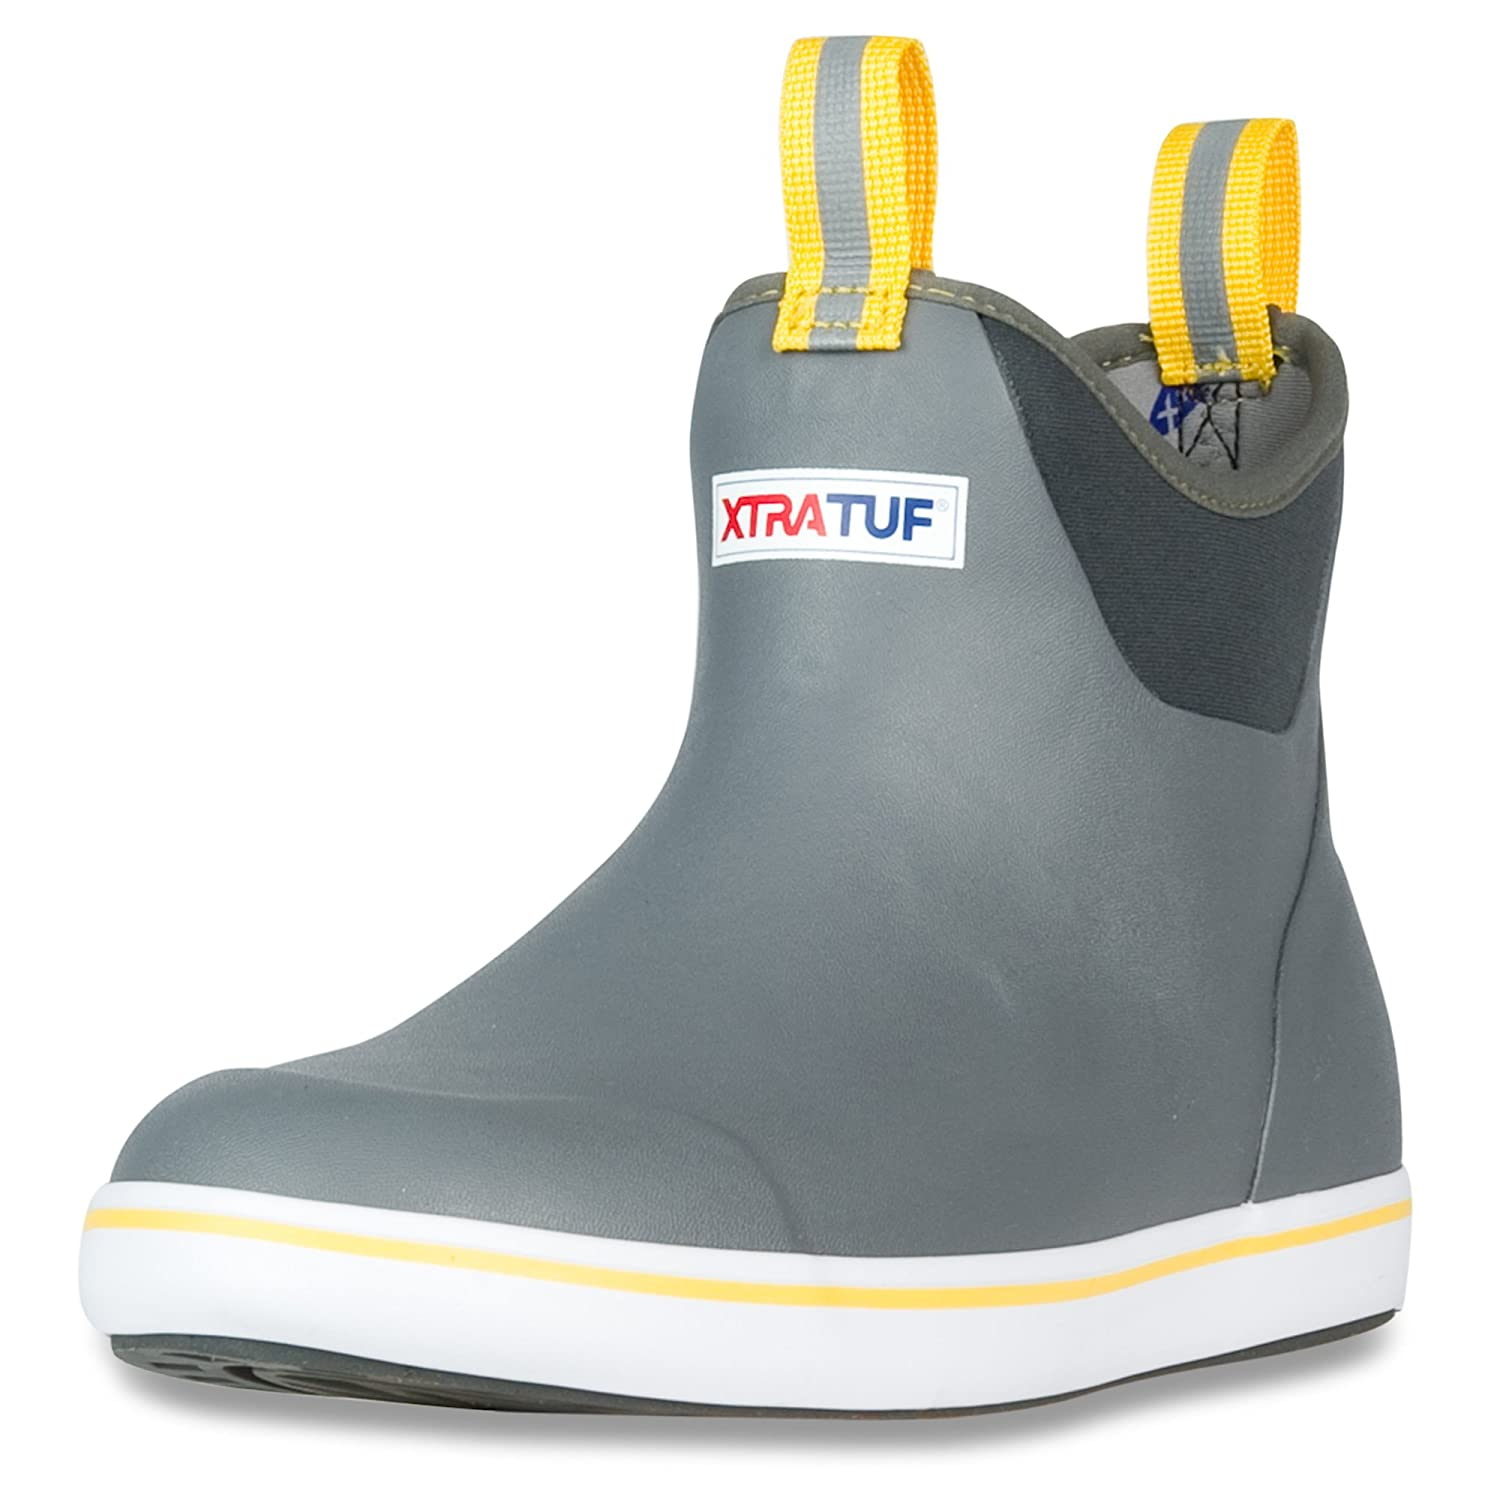 22735 Xtratuf 22735-GRY-120 Performance Series 6 Men/'s Full Rubber Ankle Deck Boots Gray /& Yellow